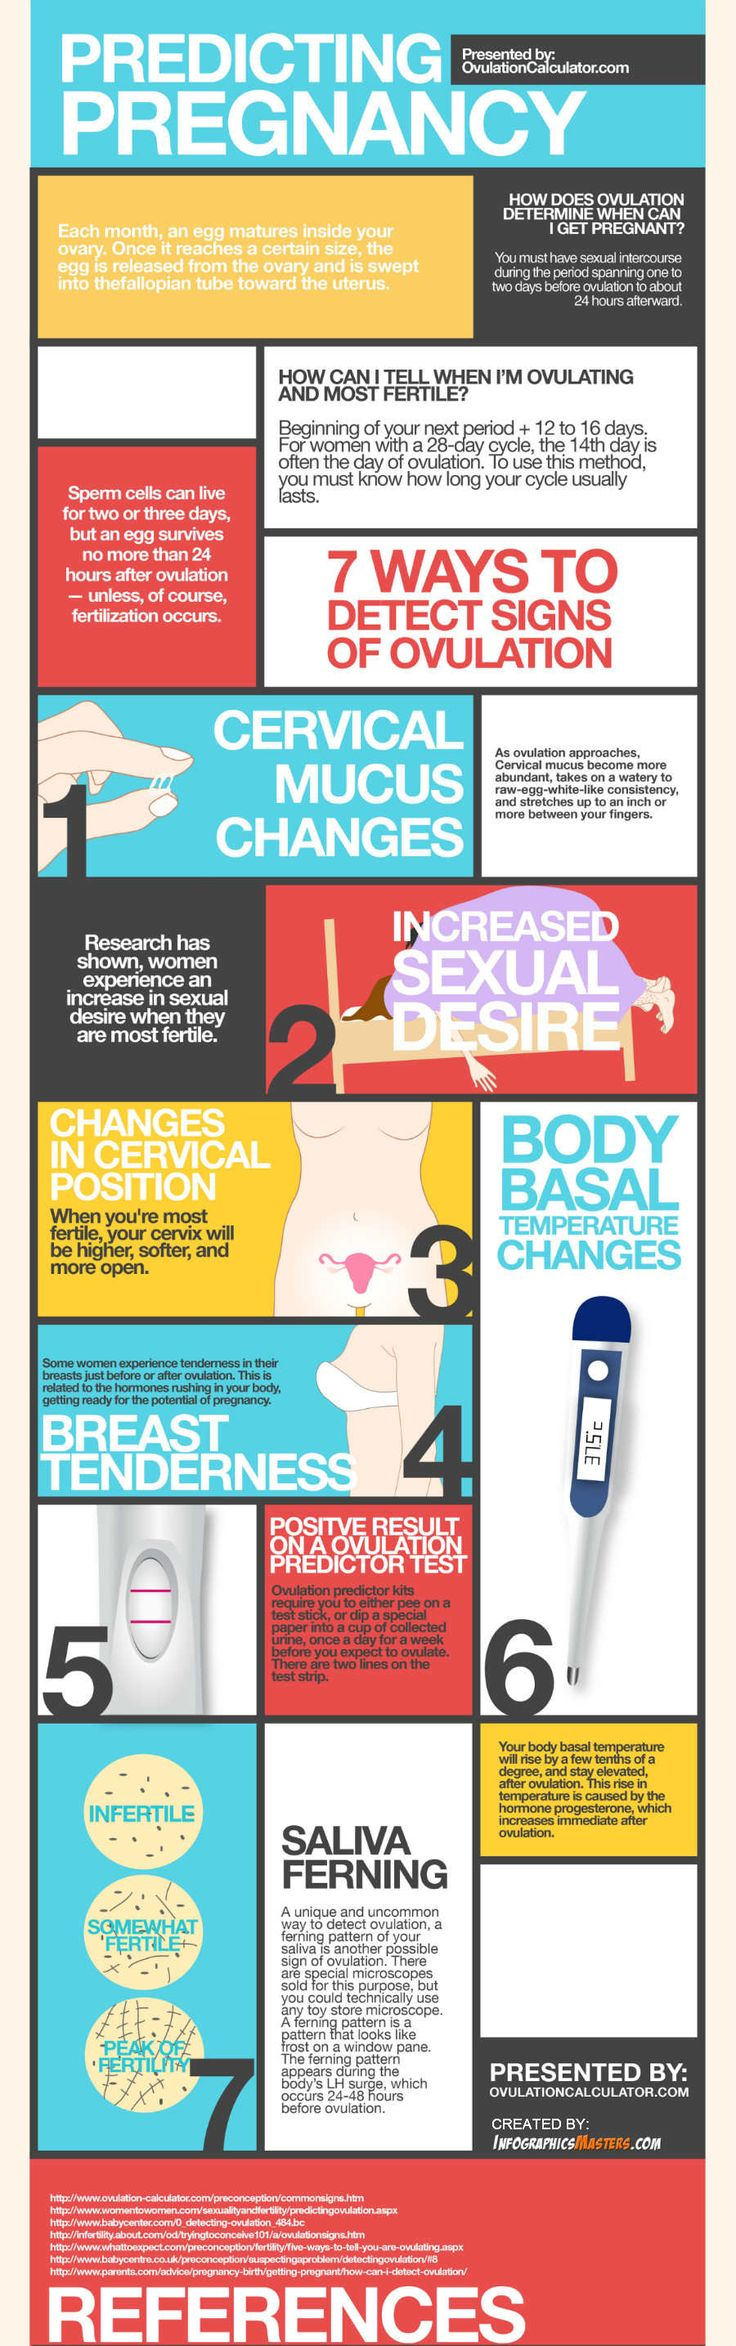 Ovulation infographic tells women on ways to detect signs of ovulation. It also tells in predicting when she is ovulating and most fertile.